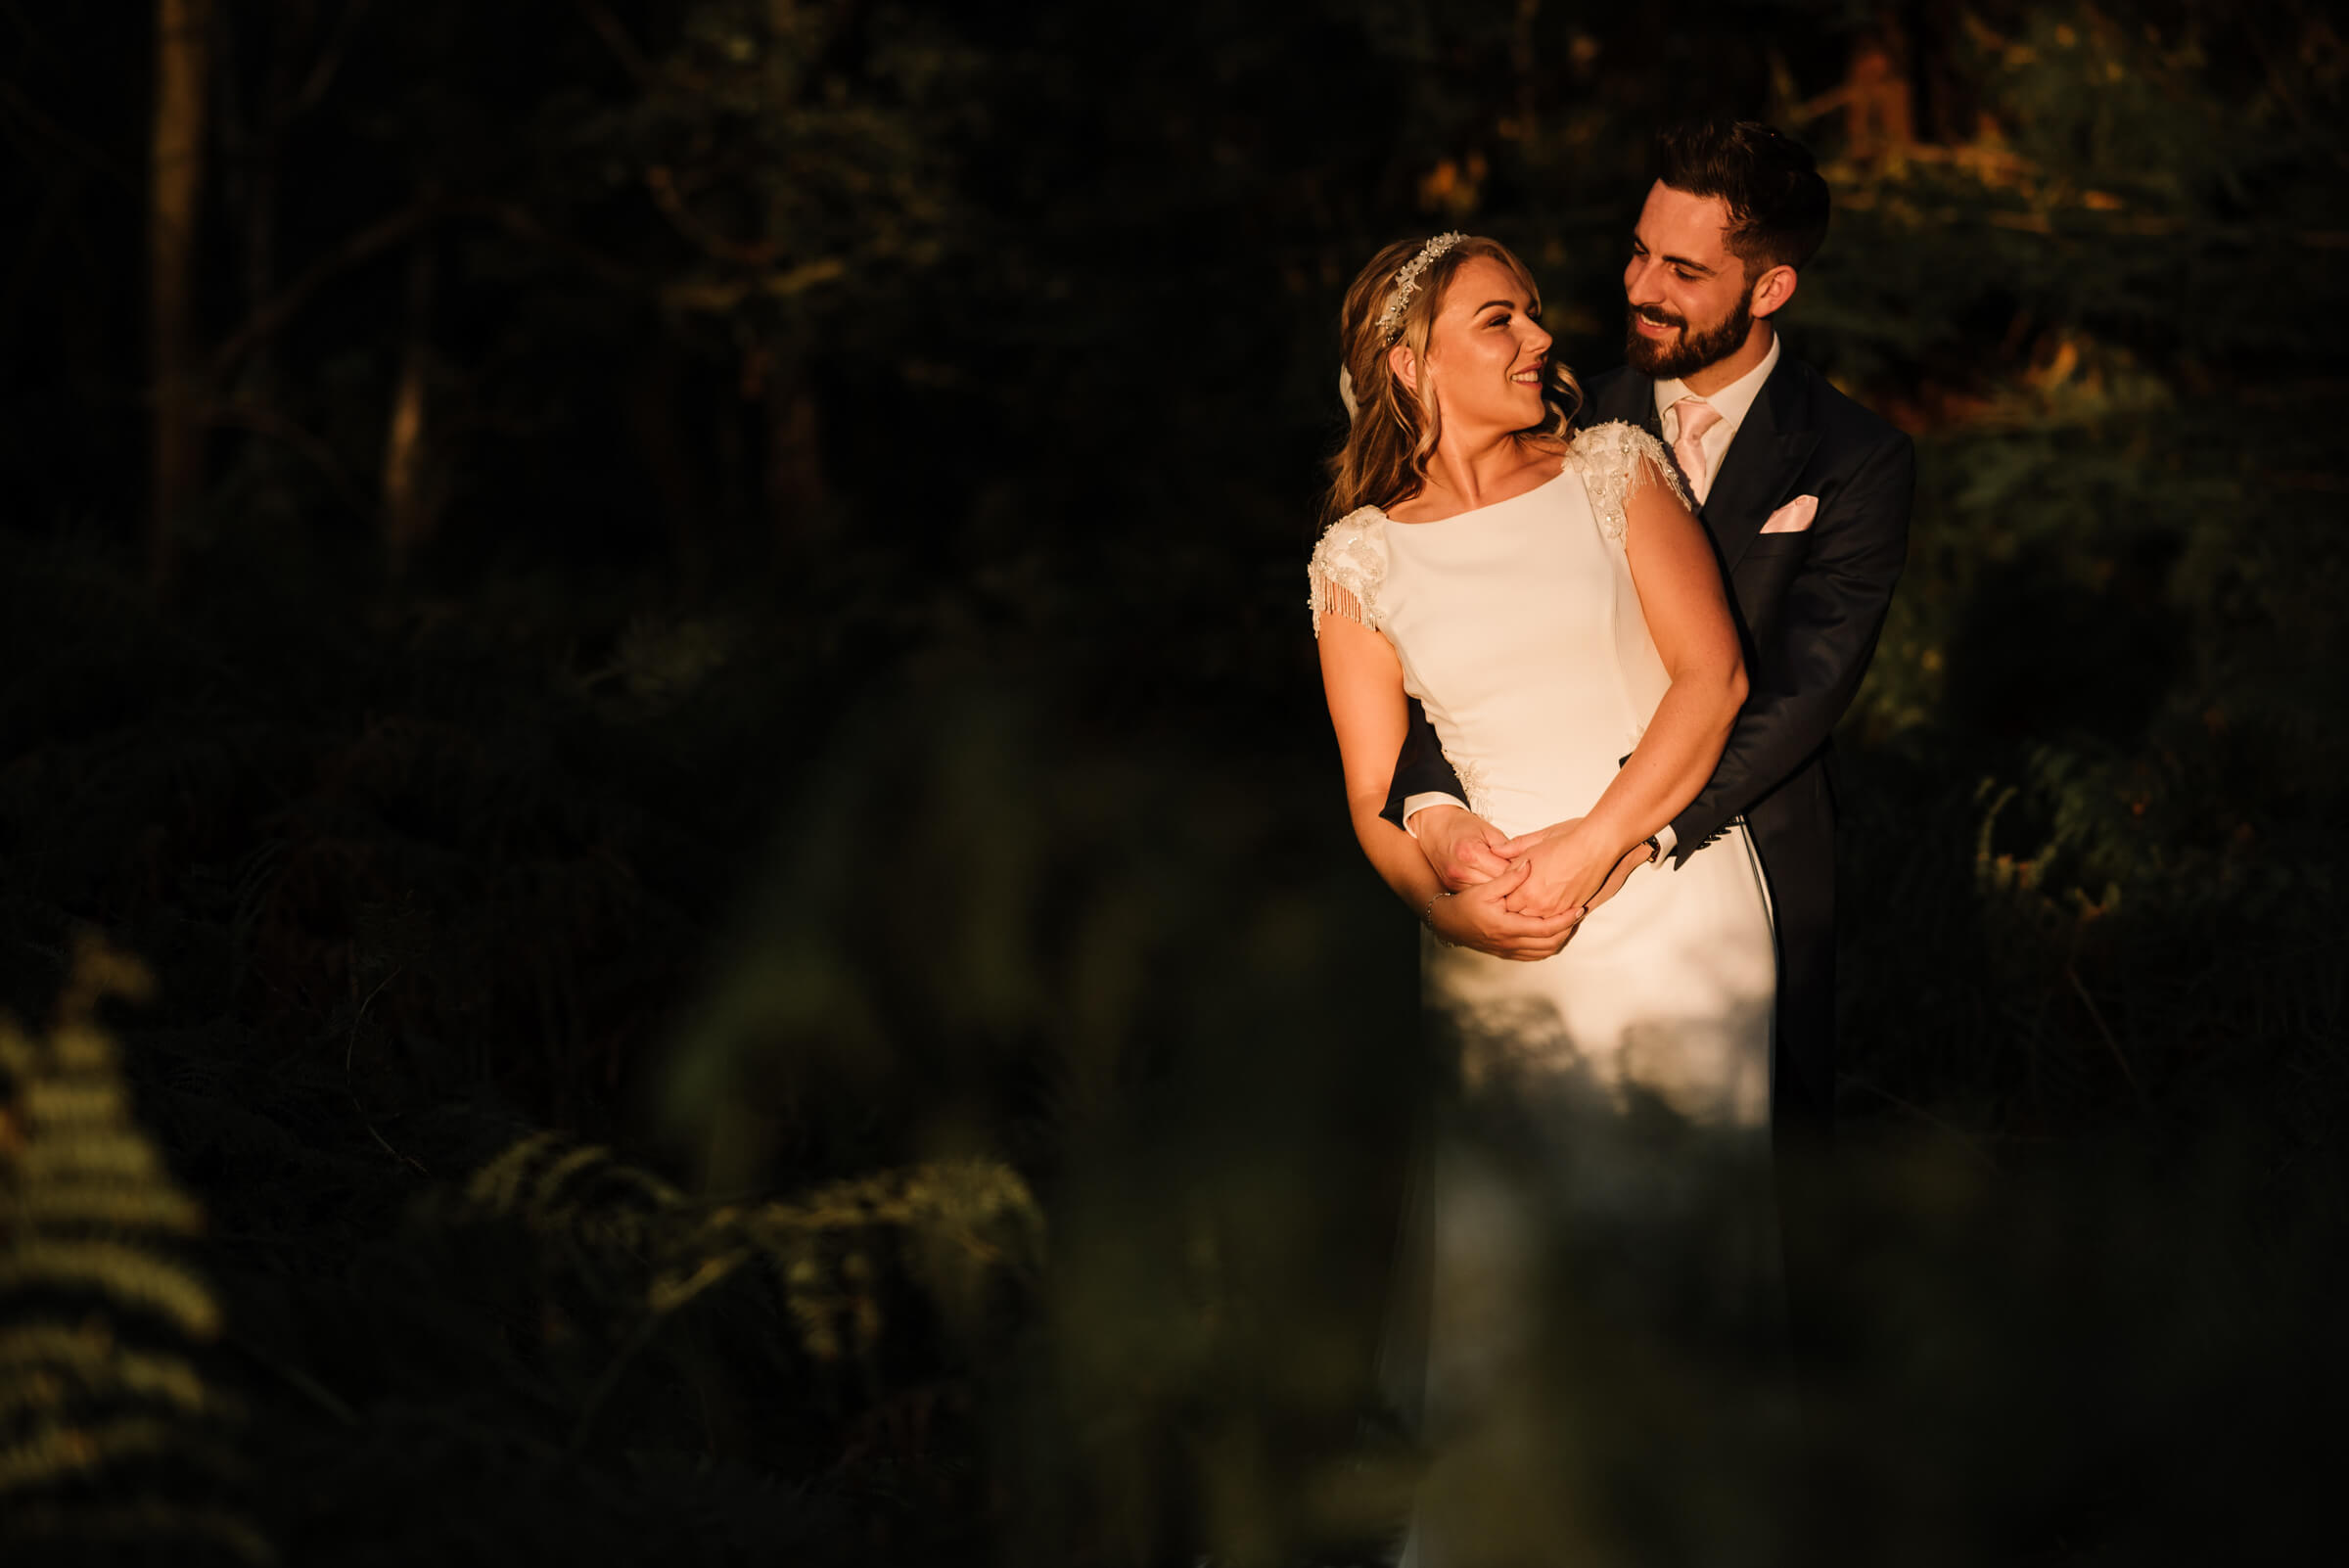 bride and groom in forest in golden light